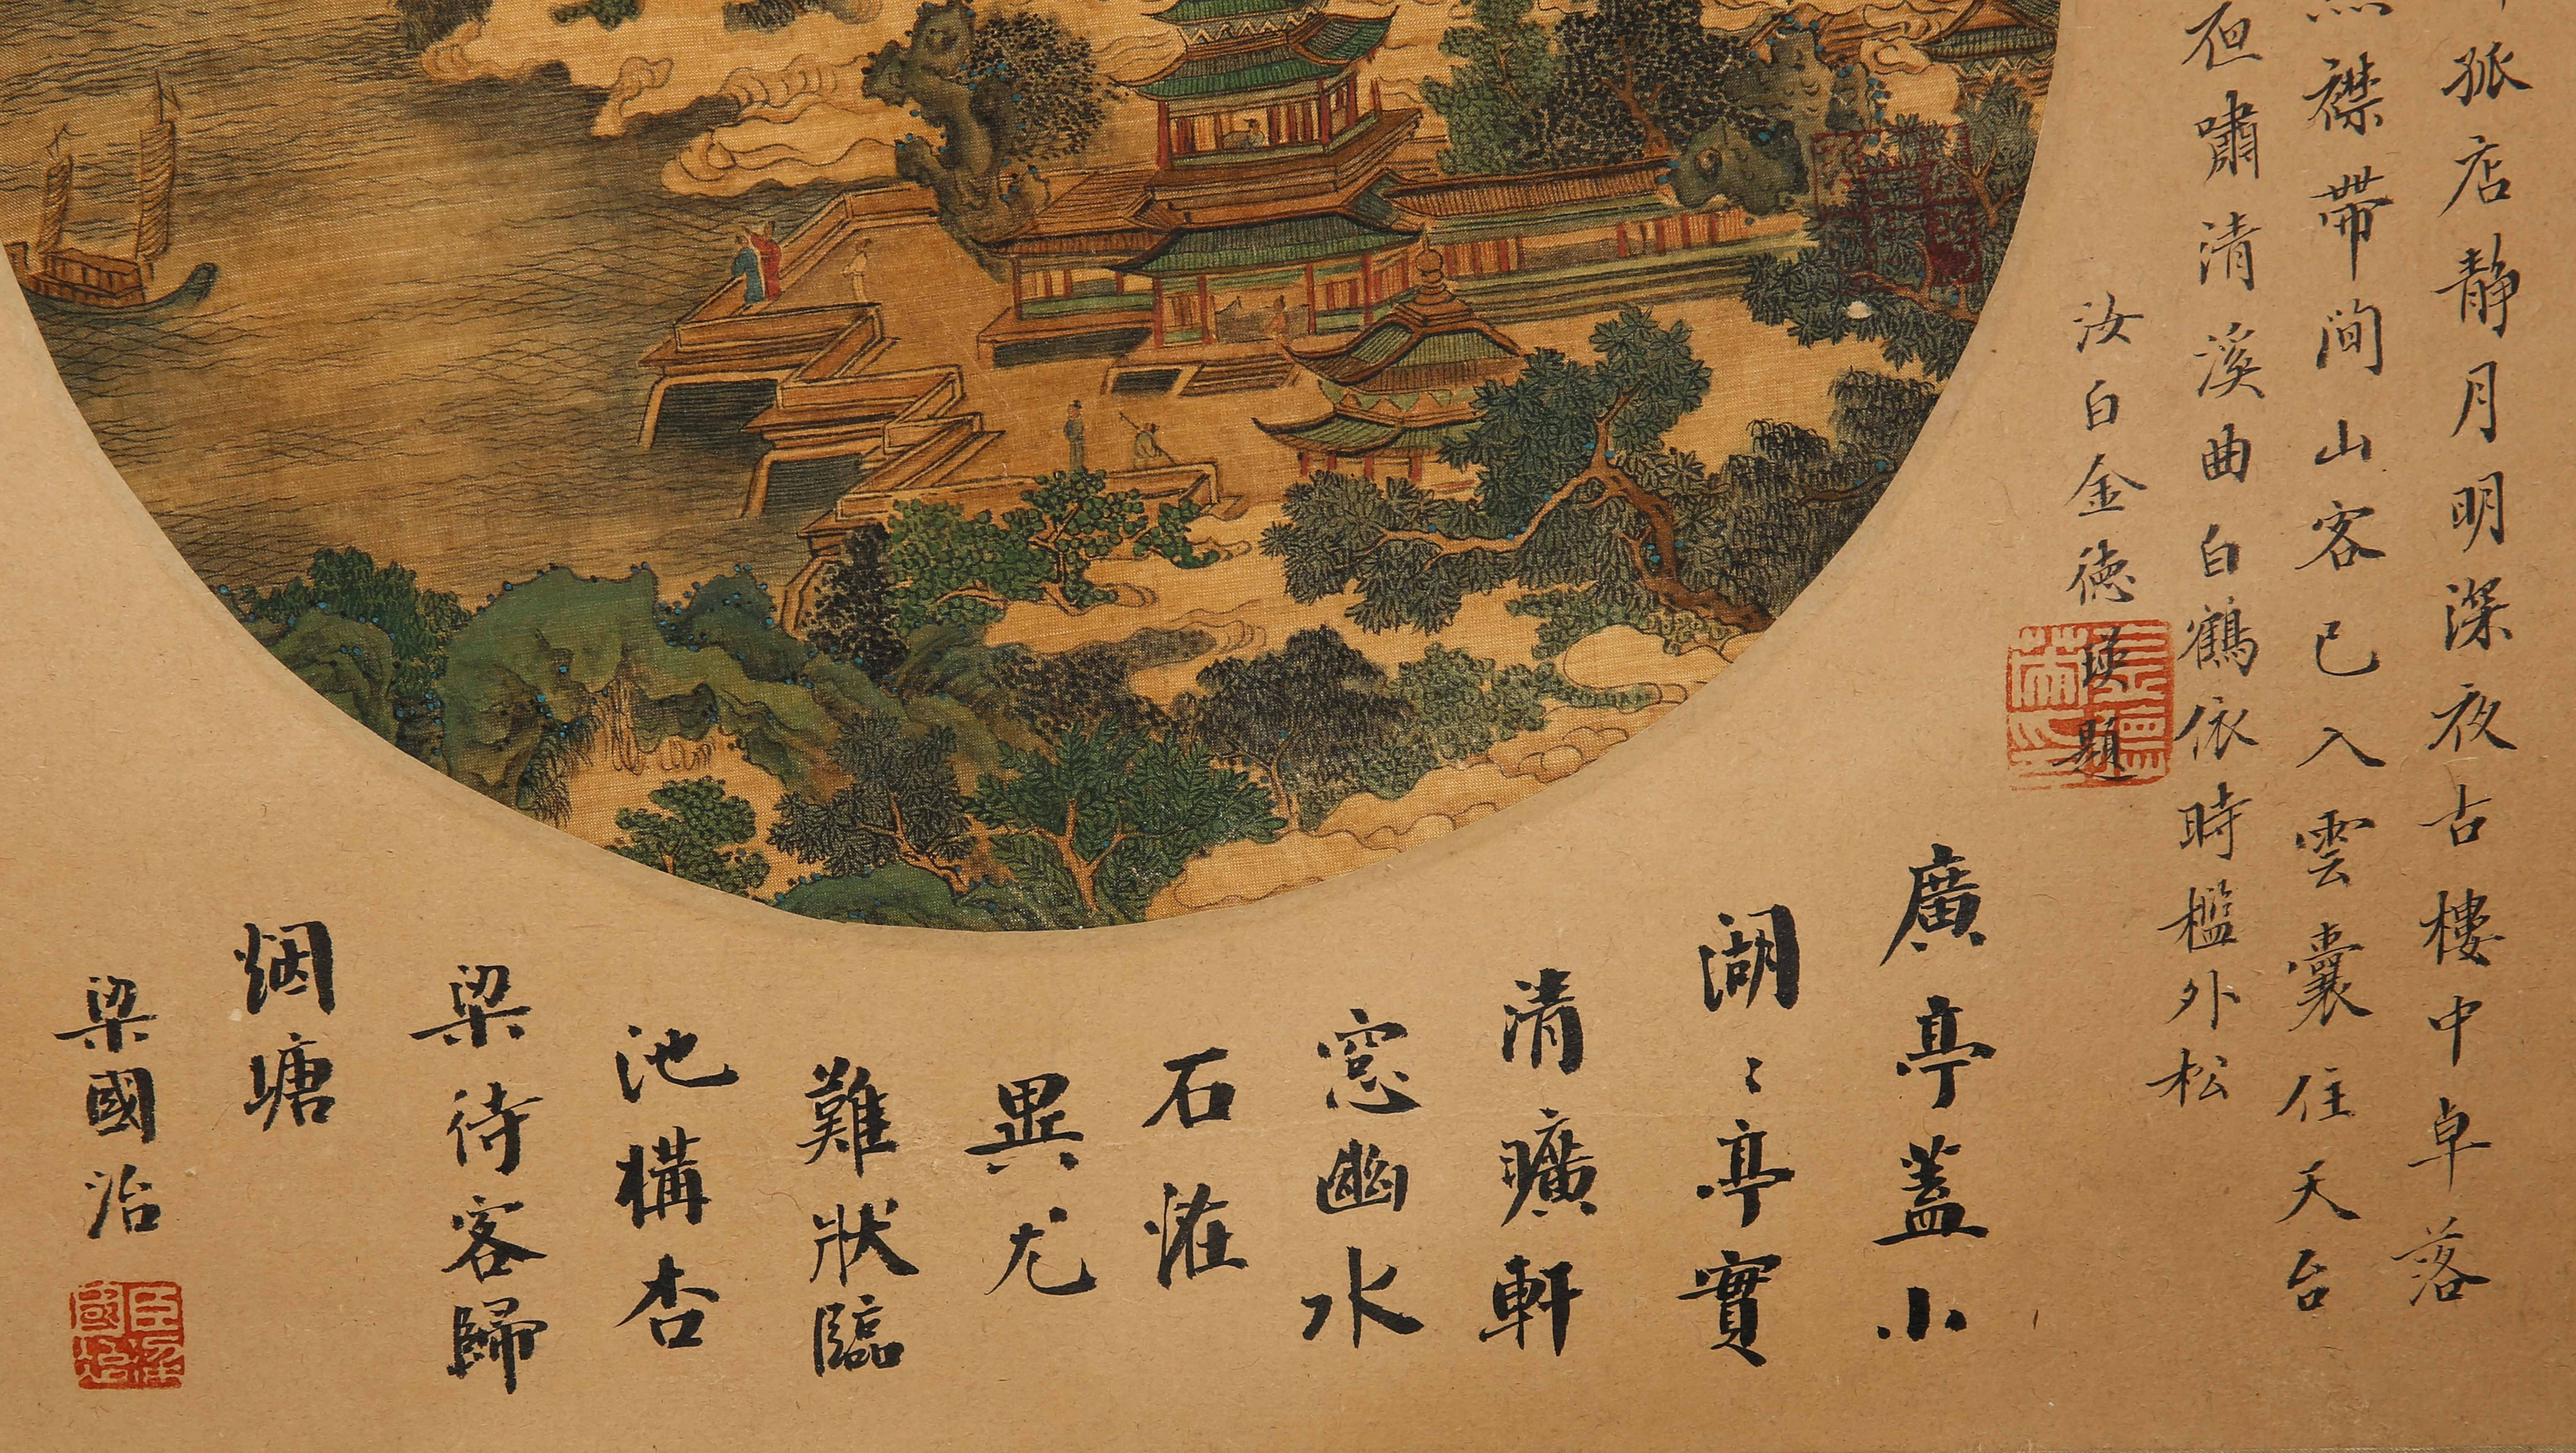 PAINTING AND CALLIGRAPHY 'CITYSCAPE', CHINA - Image 6 of 9